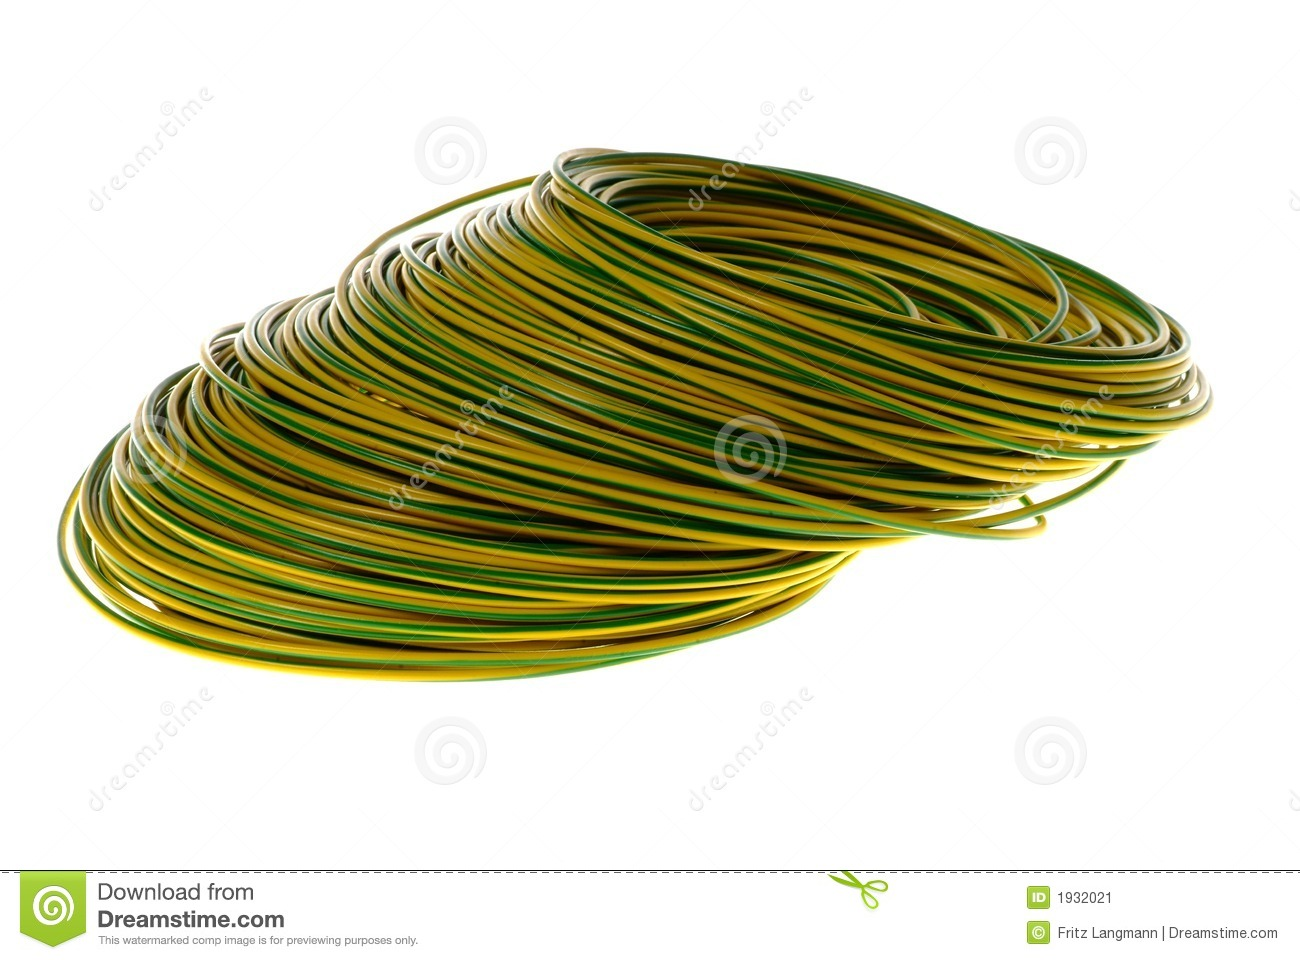 Electrical Grounding Cable : Grounding cable stock image